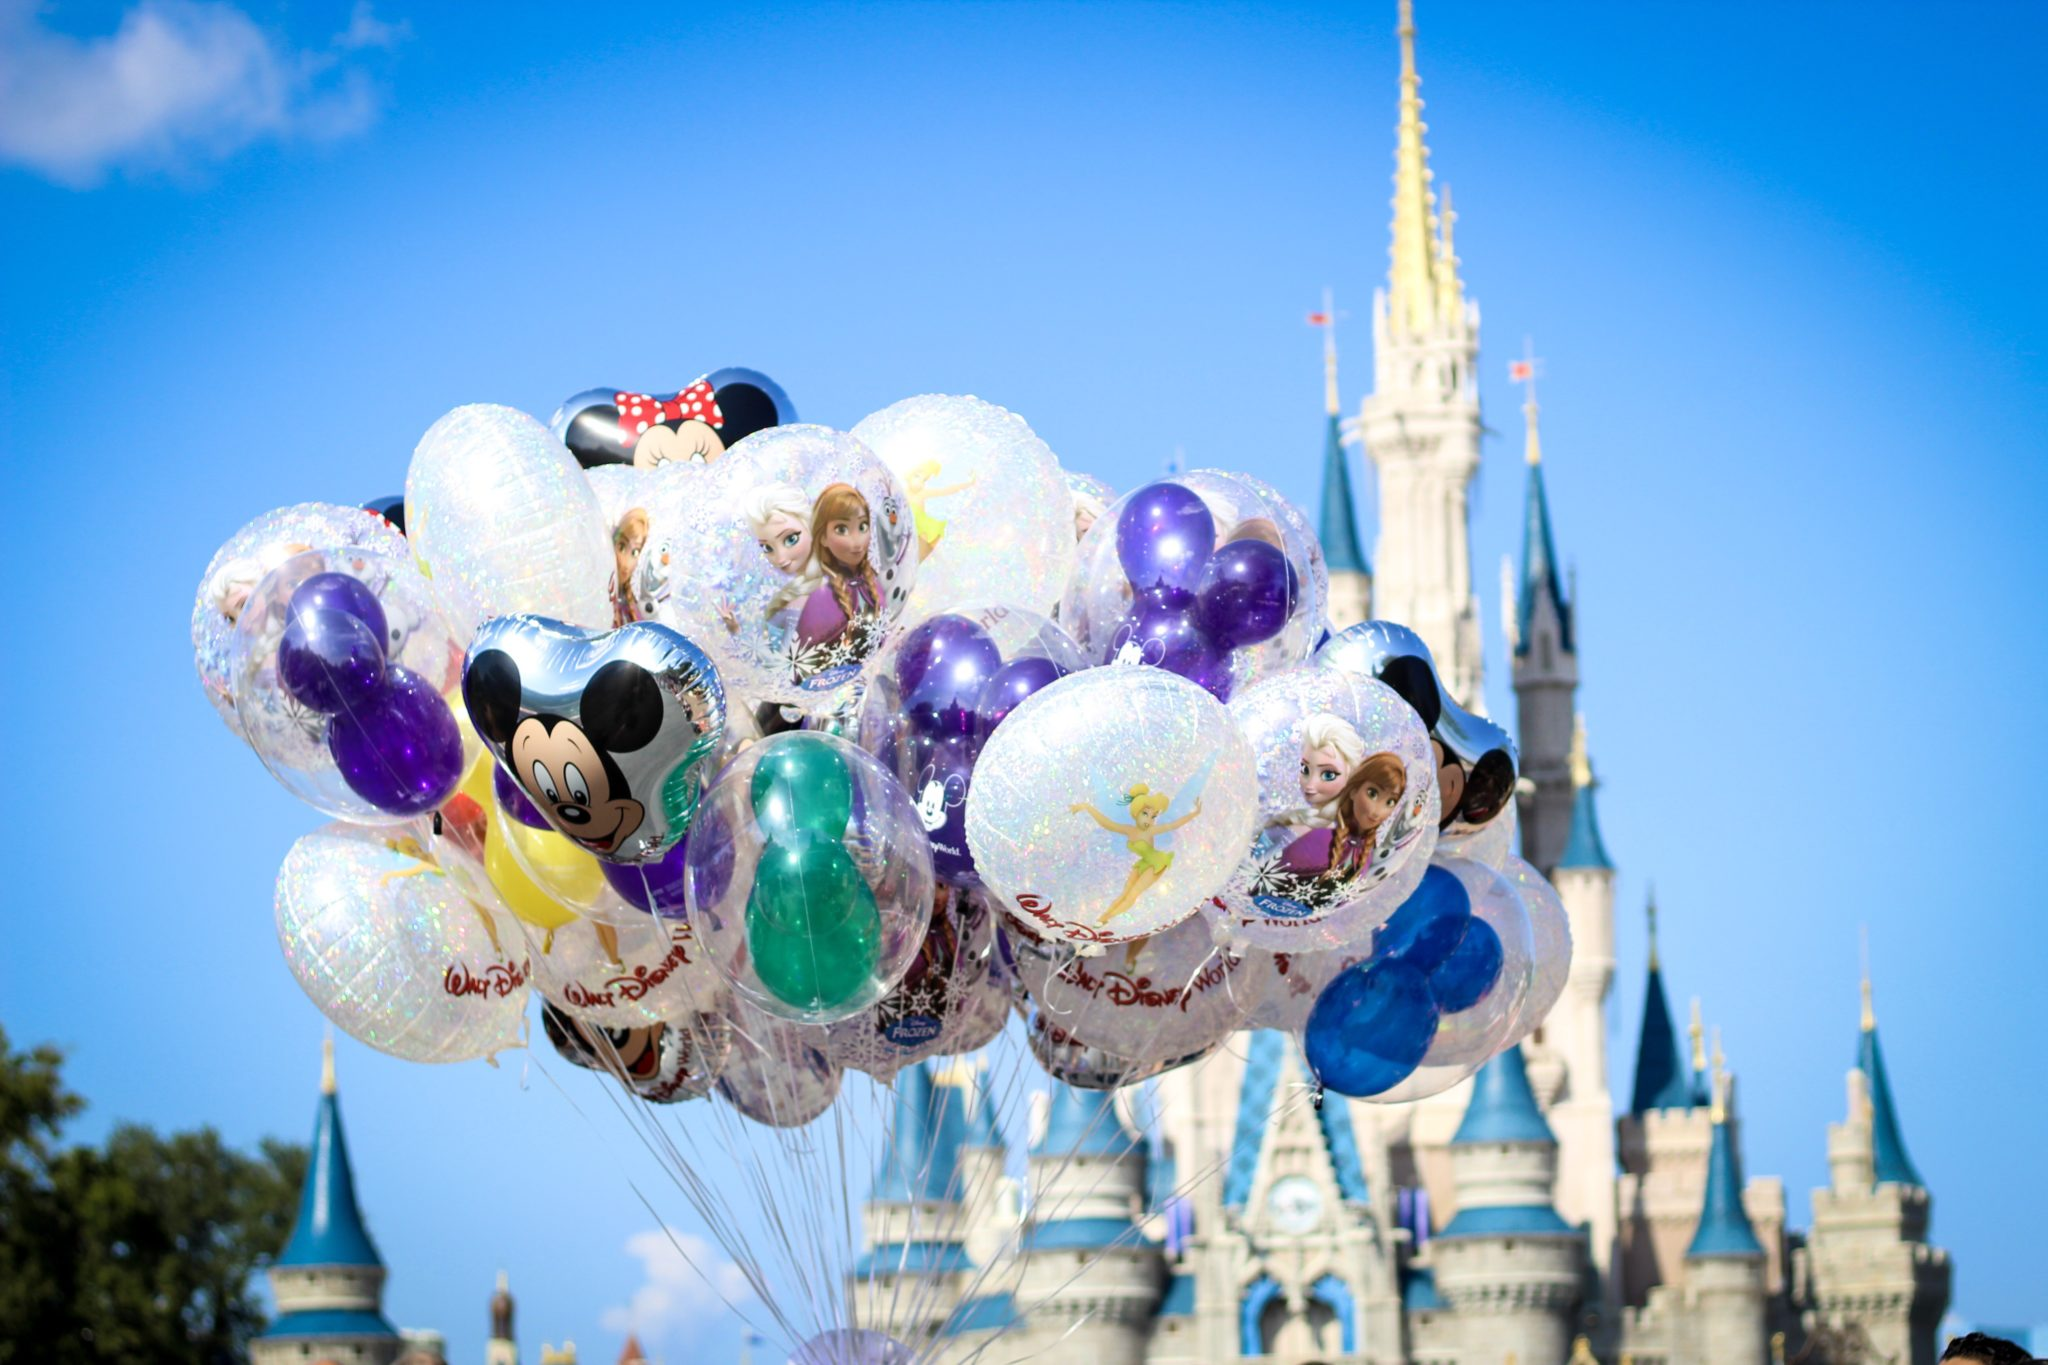 WHAT TO DO WITH TODDLERS AT DISNEY WORLD MAGIC KINGDOM